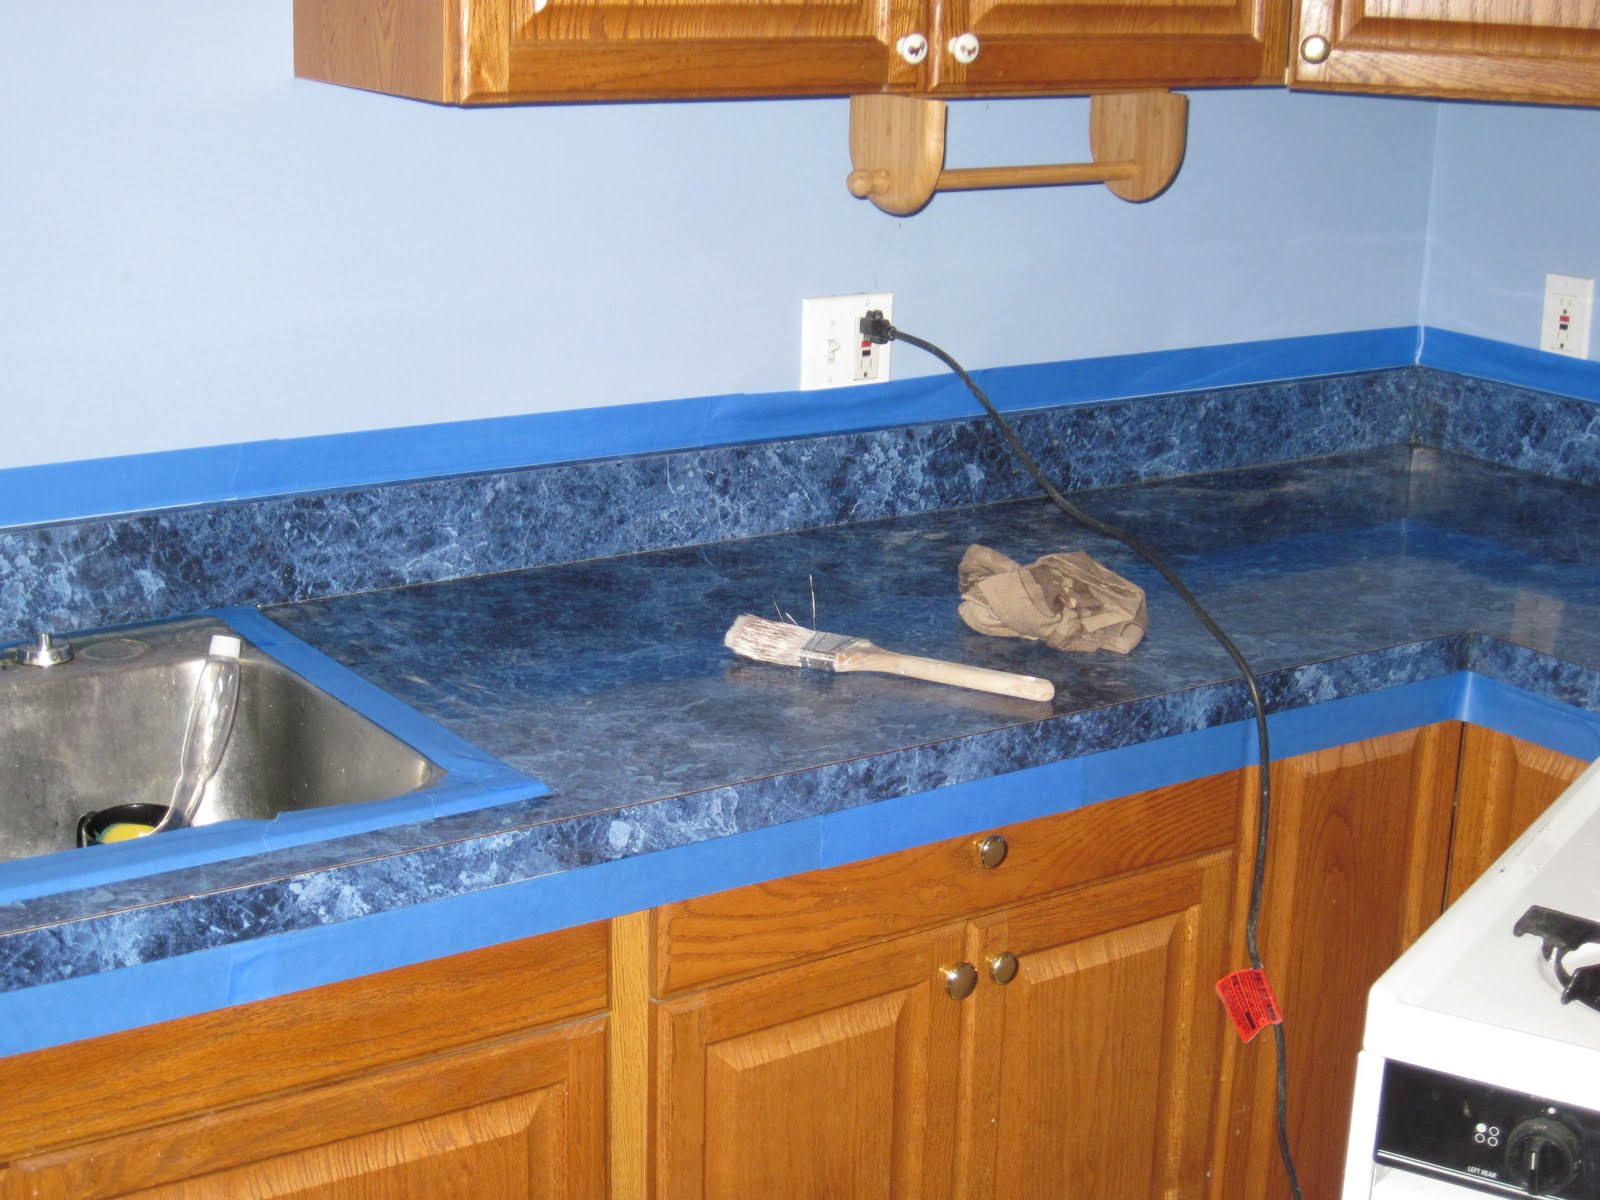 It Is A Very Strong Epoxy Paint That Works Very Well Over Top Of Laminated  Counter Tops.These Pictures Illustrate The Before!